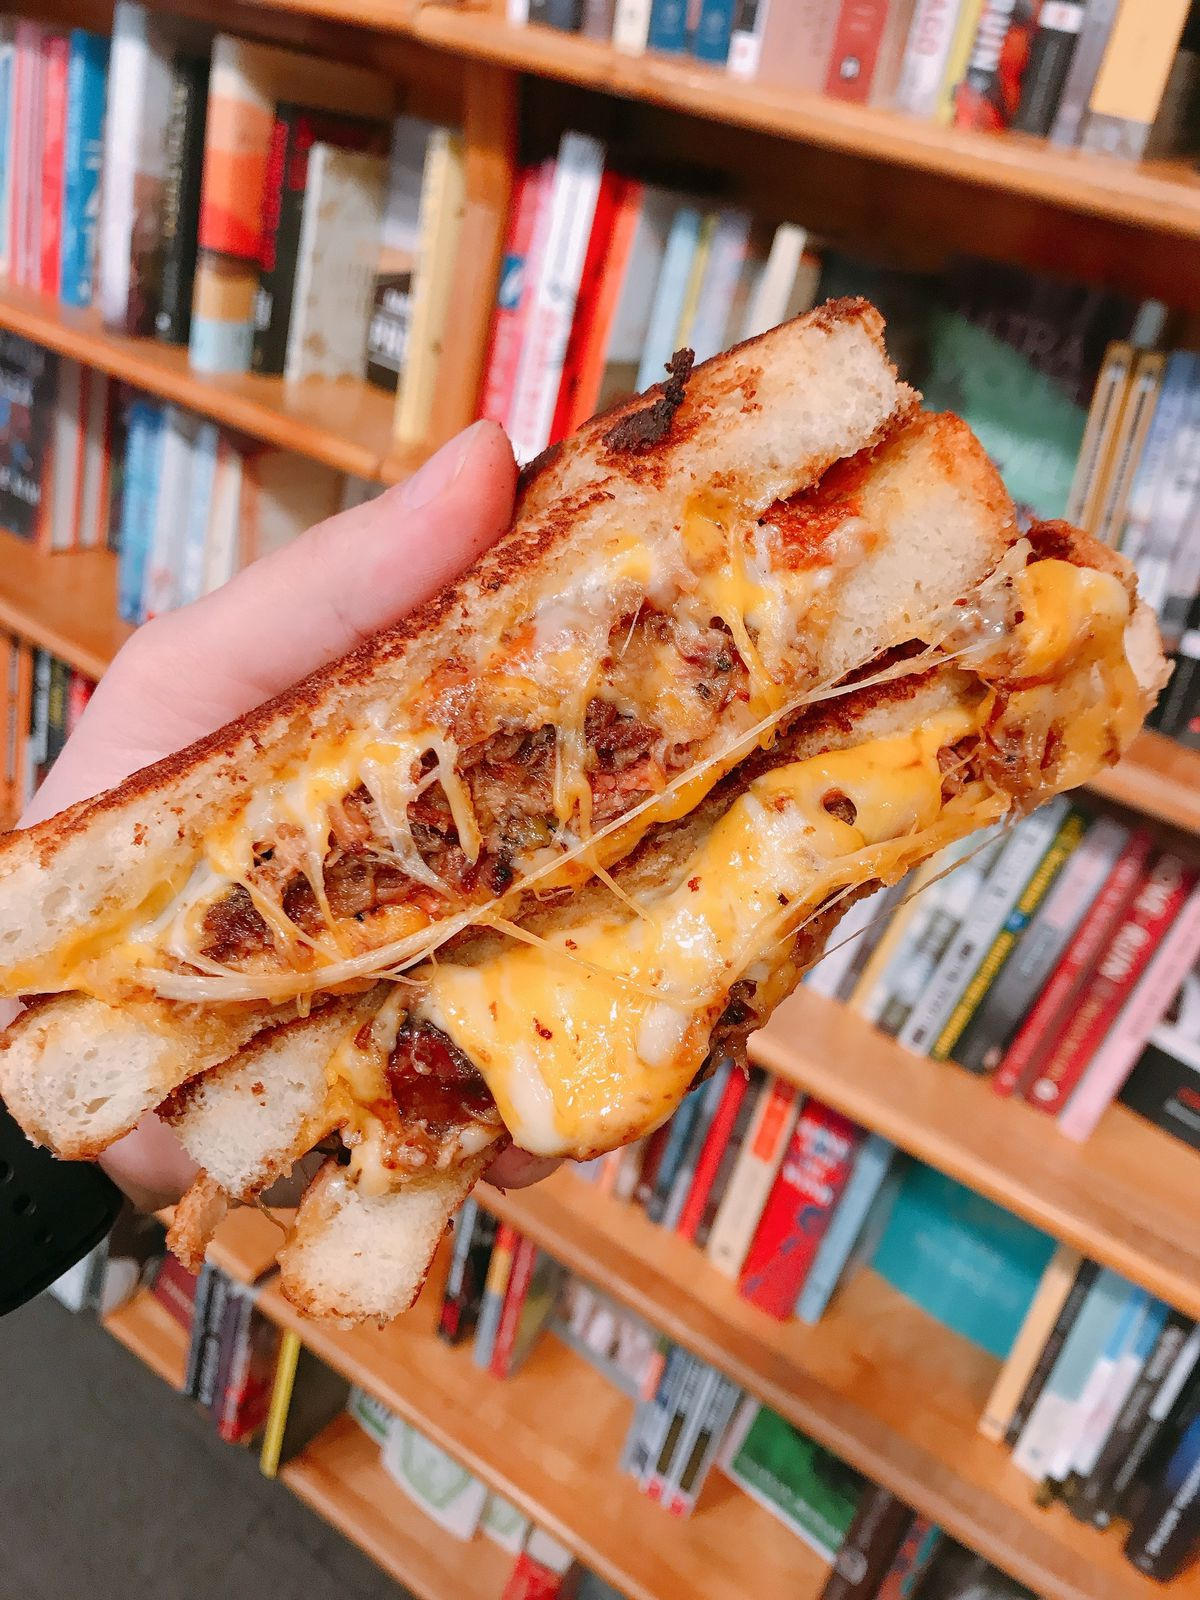 A Fedpig Melt has smoked pulled pork, melted cheddar and jack cheeses, and cherry pepper aioli